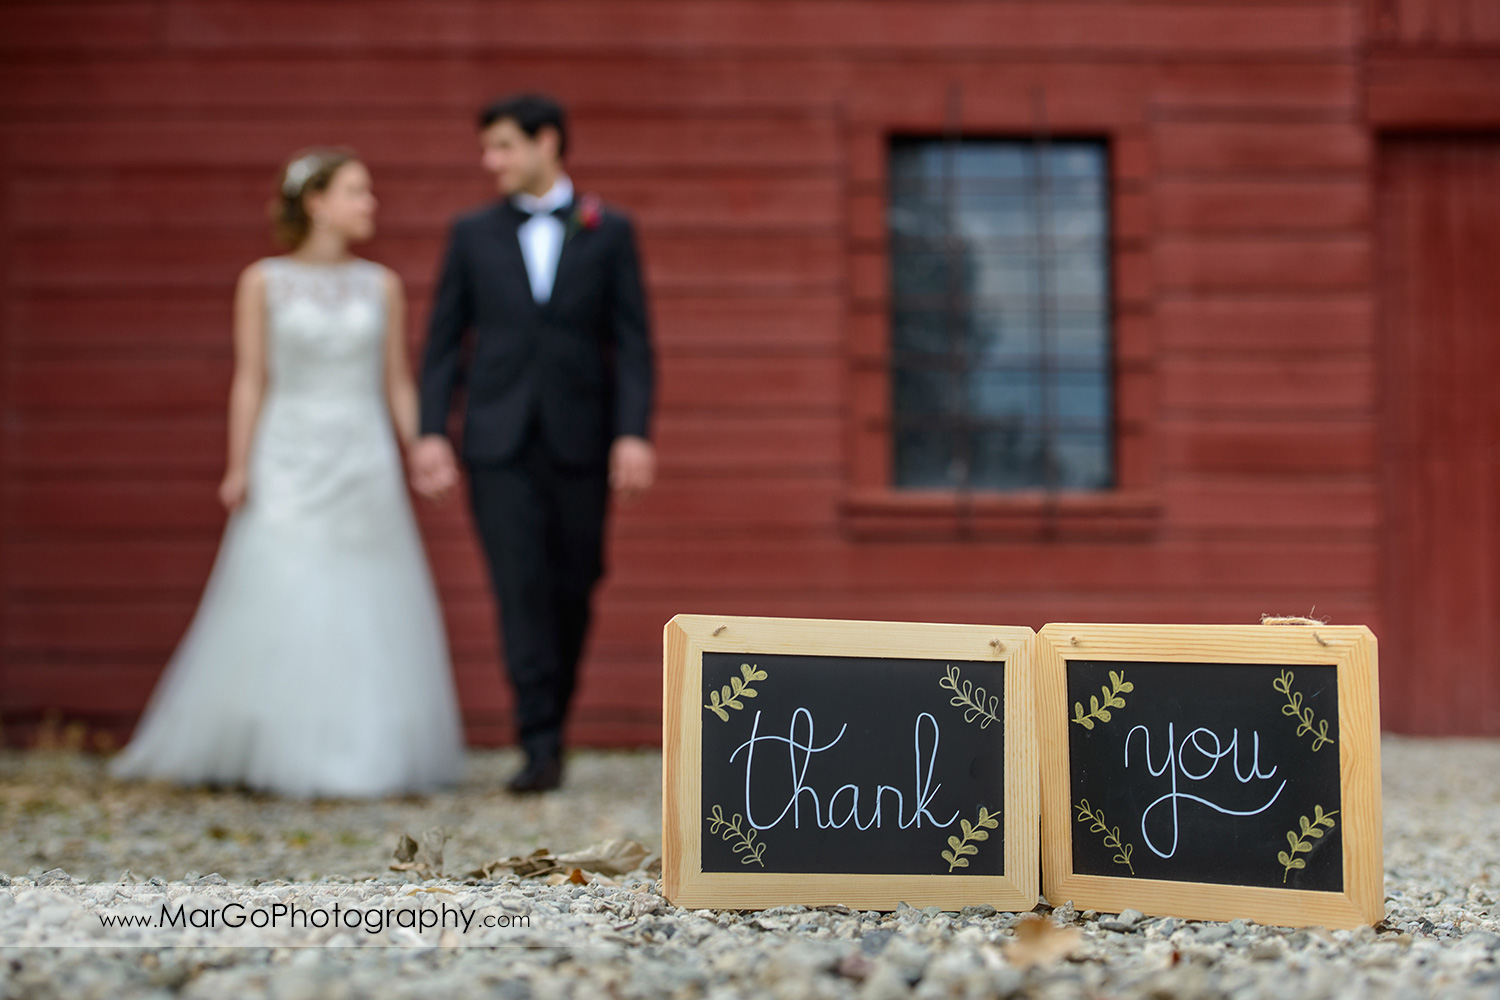 thank you signs with bride and groom at red barn wall in the background at Shinn Historical Park and Arboretum in Fremont